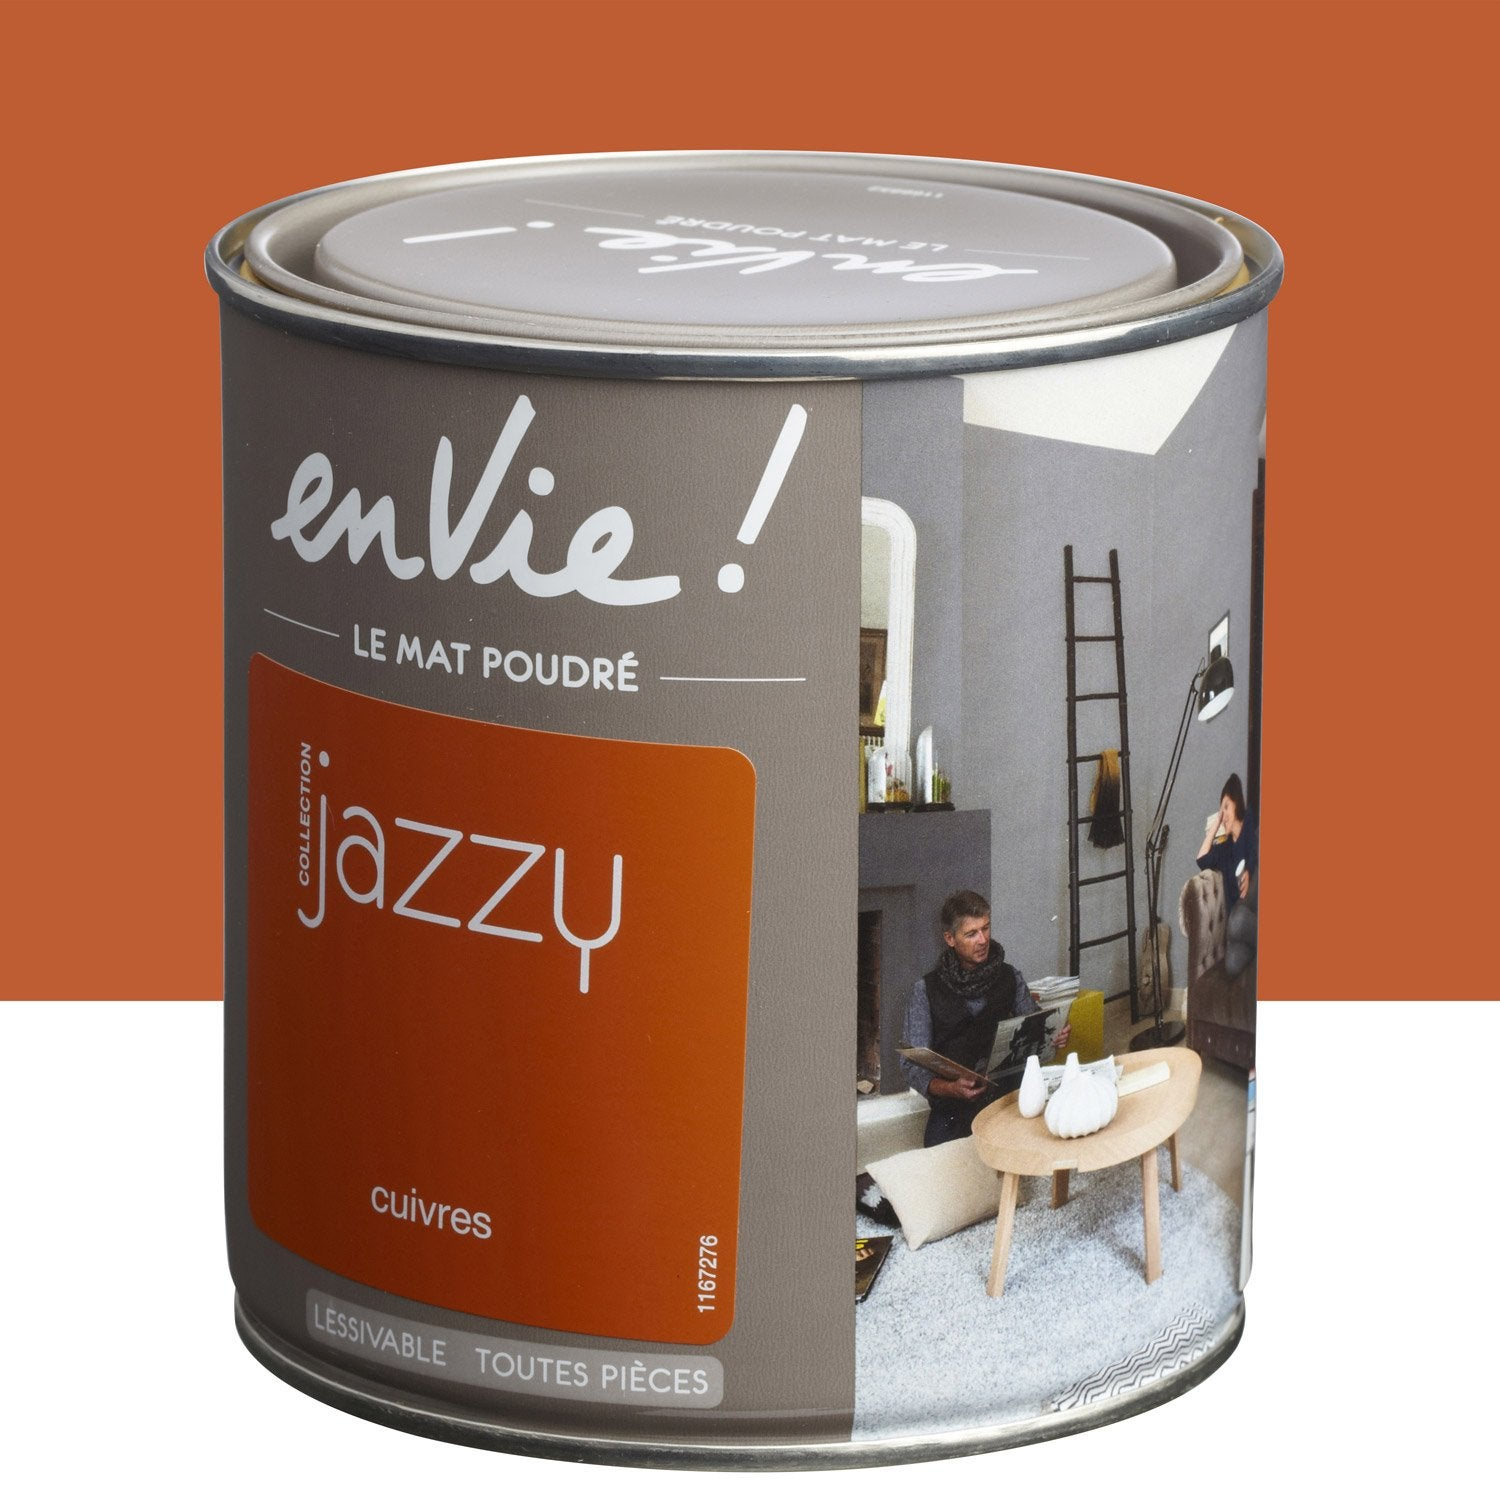 Peinture orange cuivres luxens envie collection jazzy 0 5 l leroy merlin - Peinture pailletee leroy merlin ...